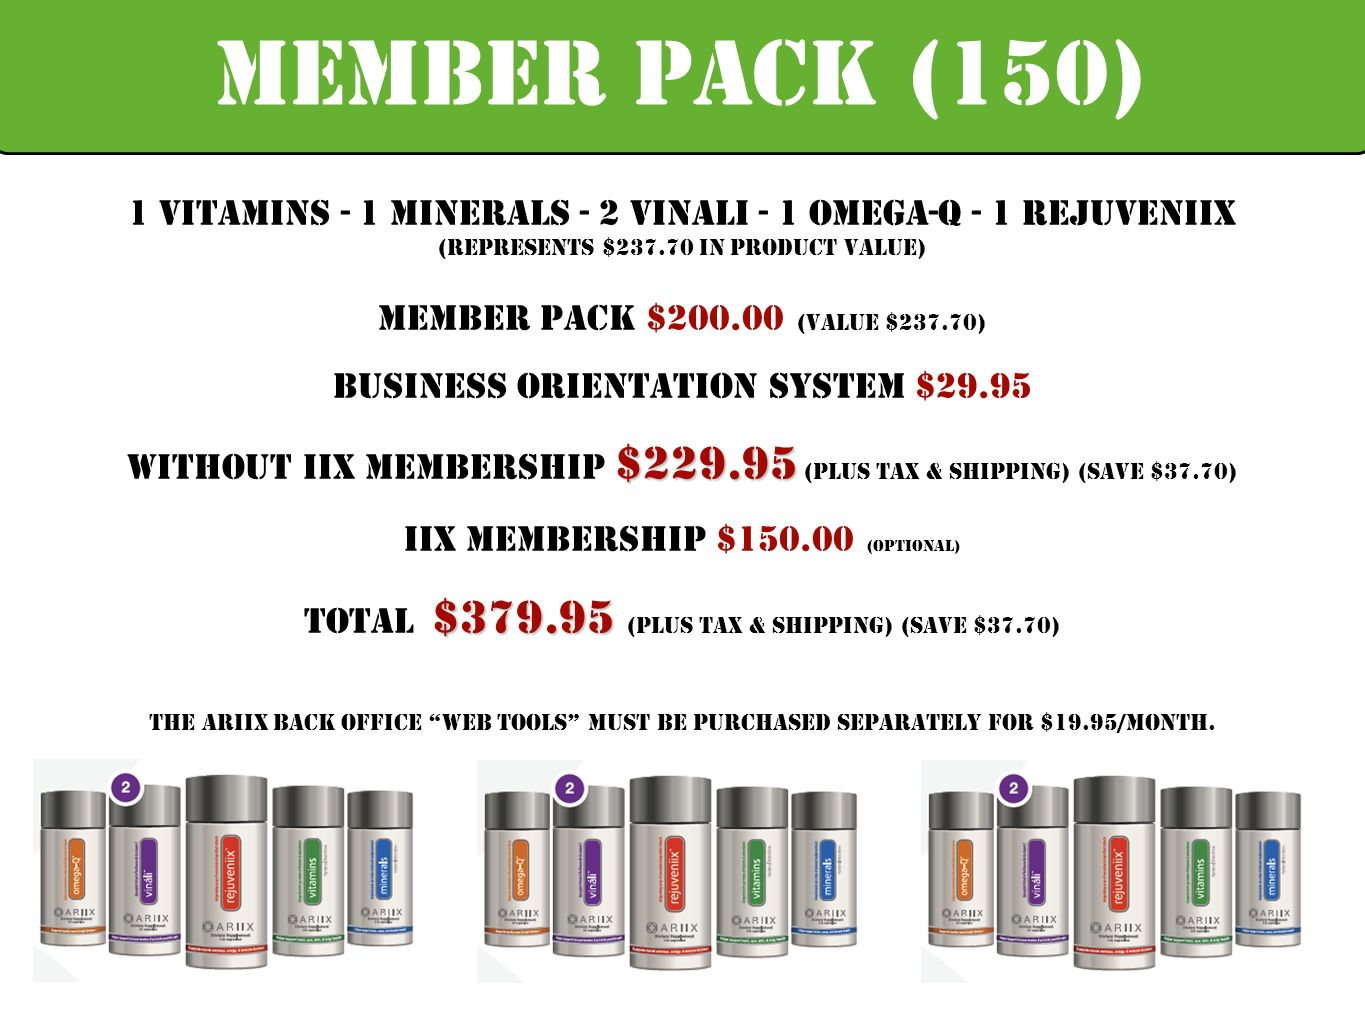 Member PACK (150) 1 Vitamins - 1 Minerals - 2 Vinali - 1 Omega-Q - 1 Rejuveniix. (Represents $ in Product Value)